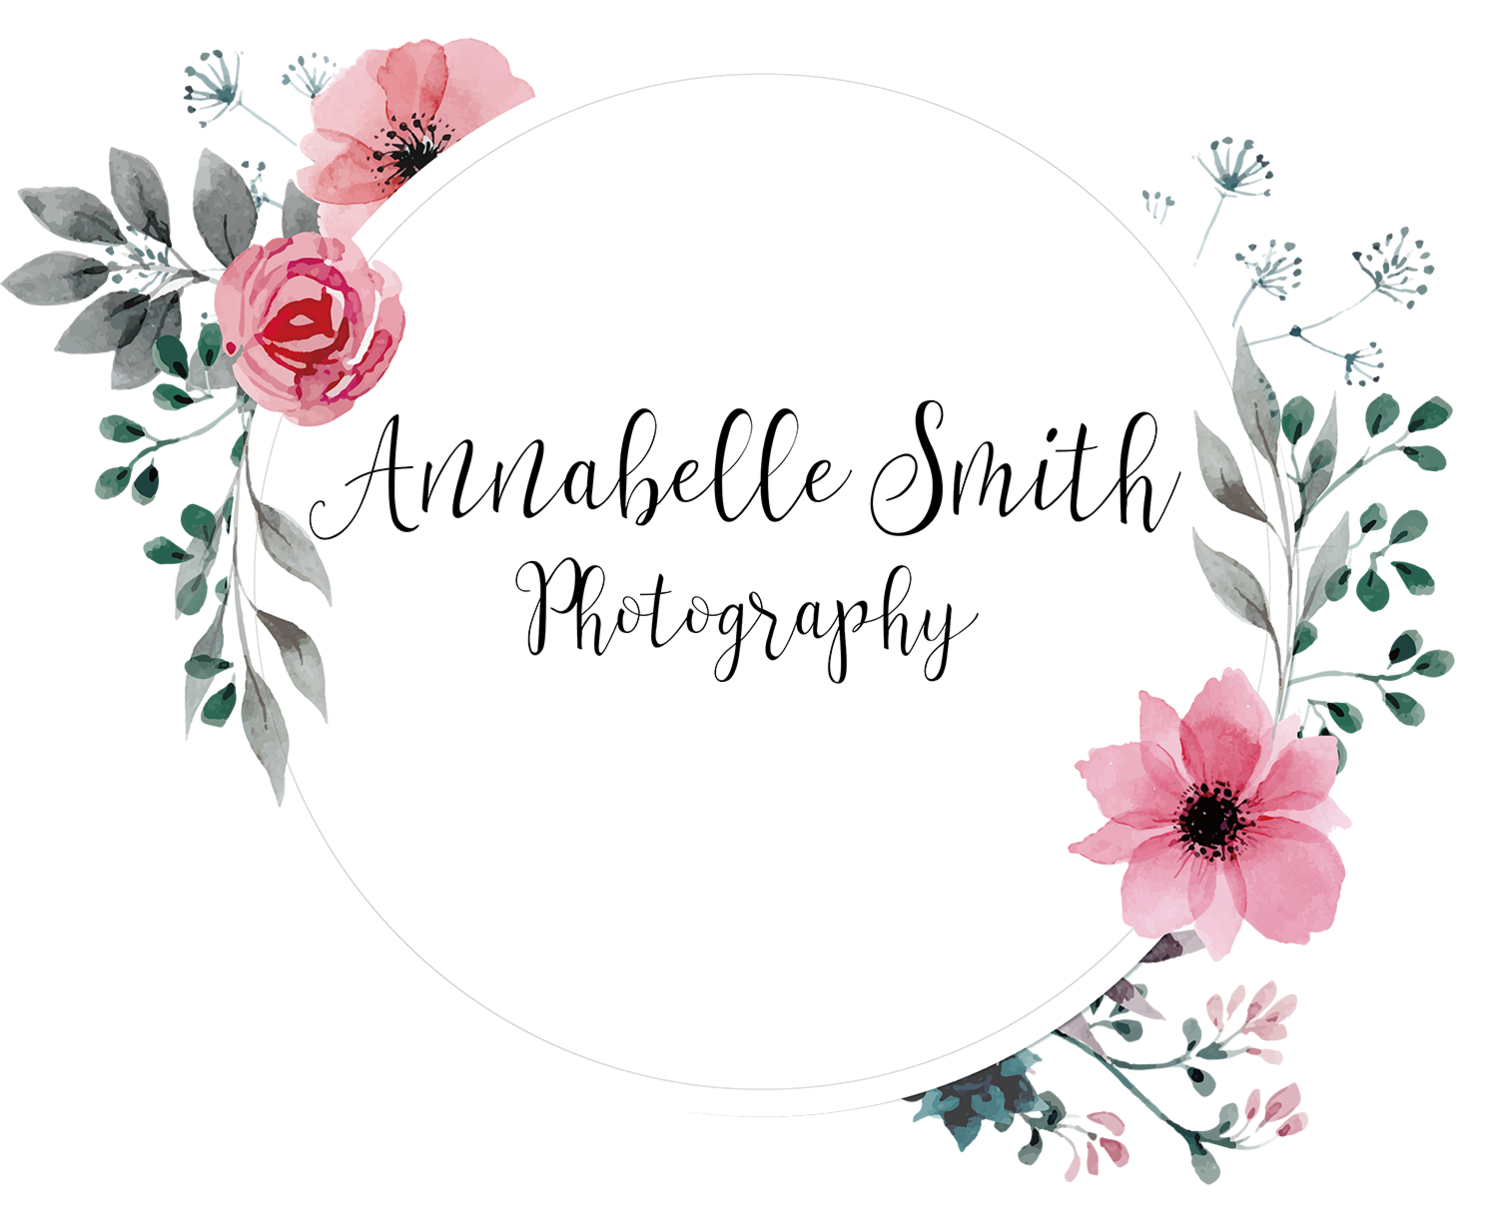 Annabelle Smith Photography